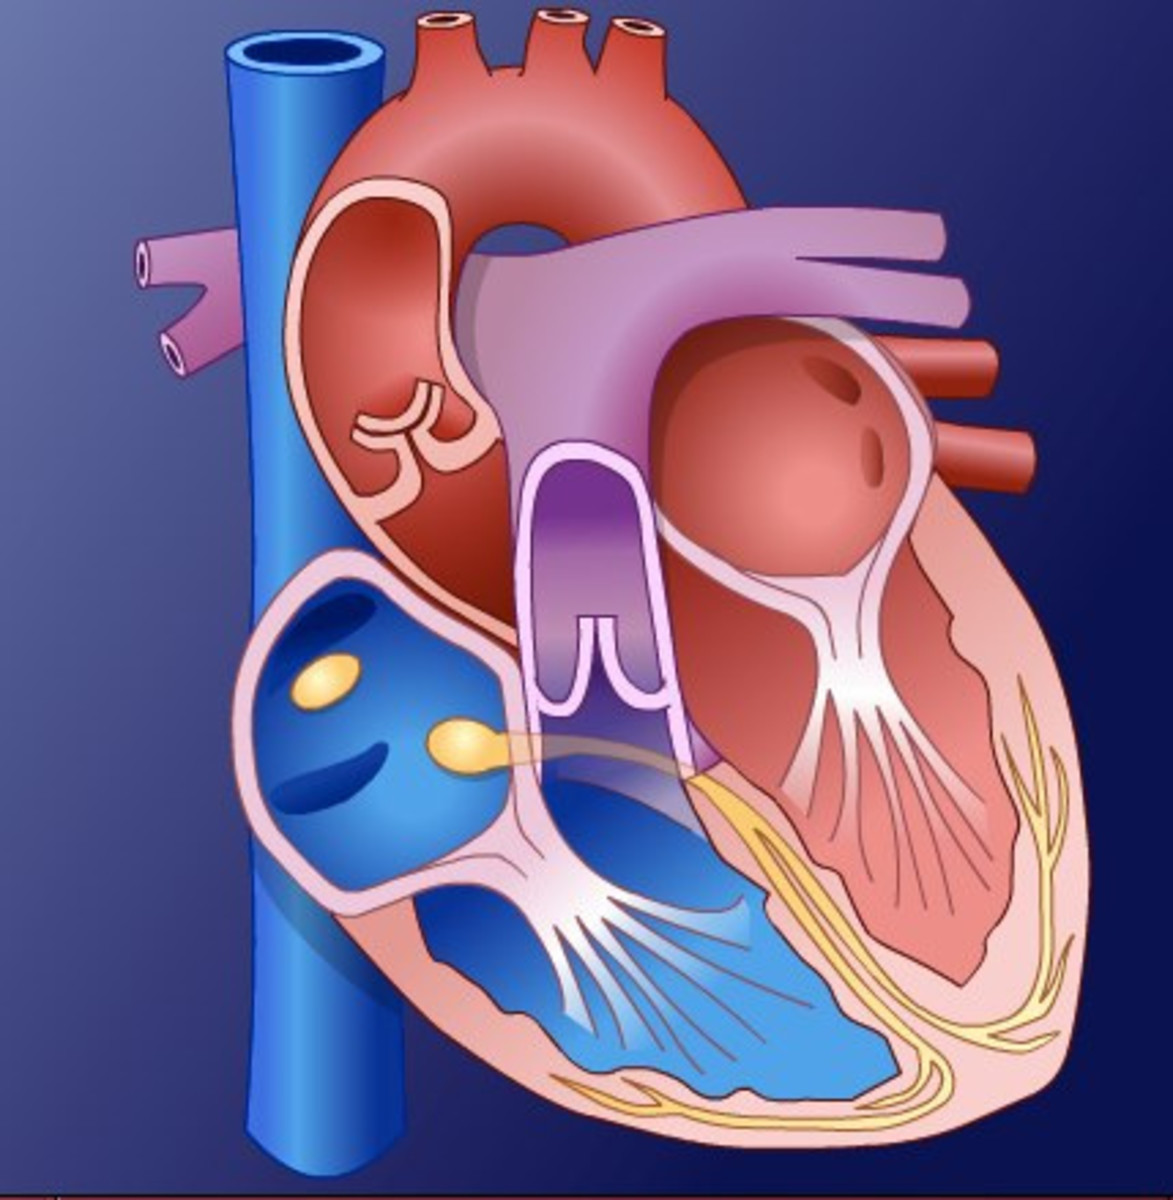 Easy Anatomy Understanding How The Human Heart Works Hubpages